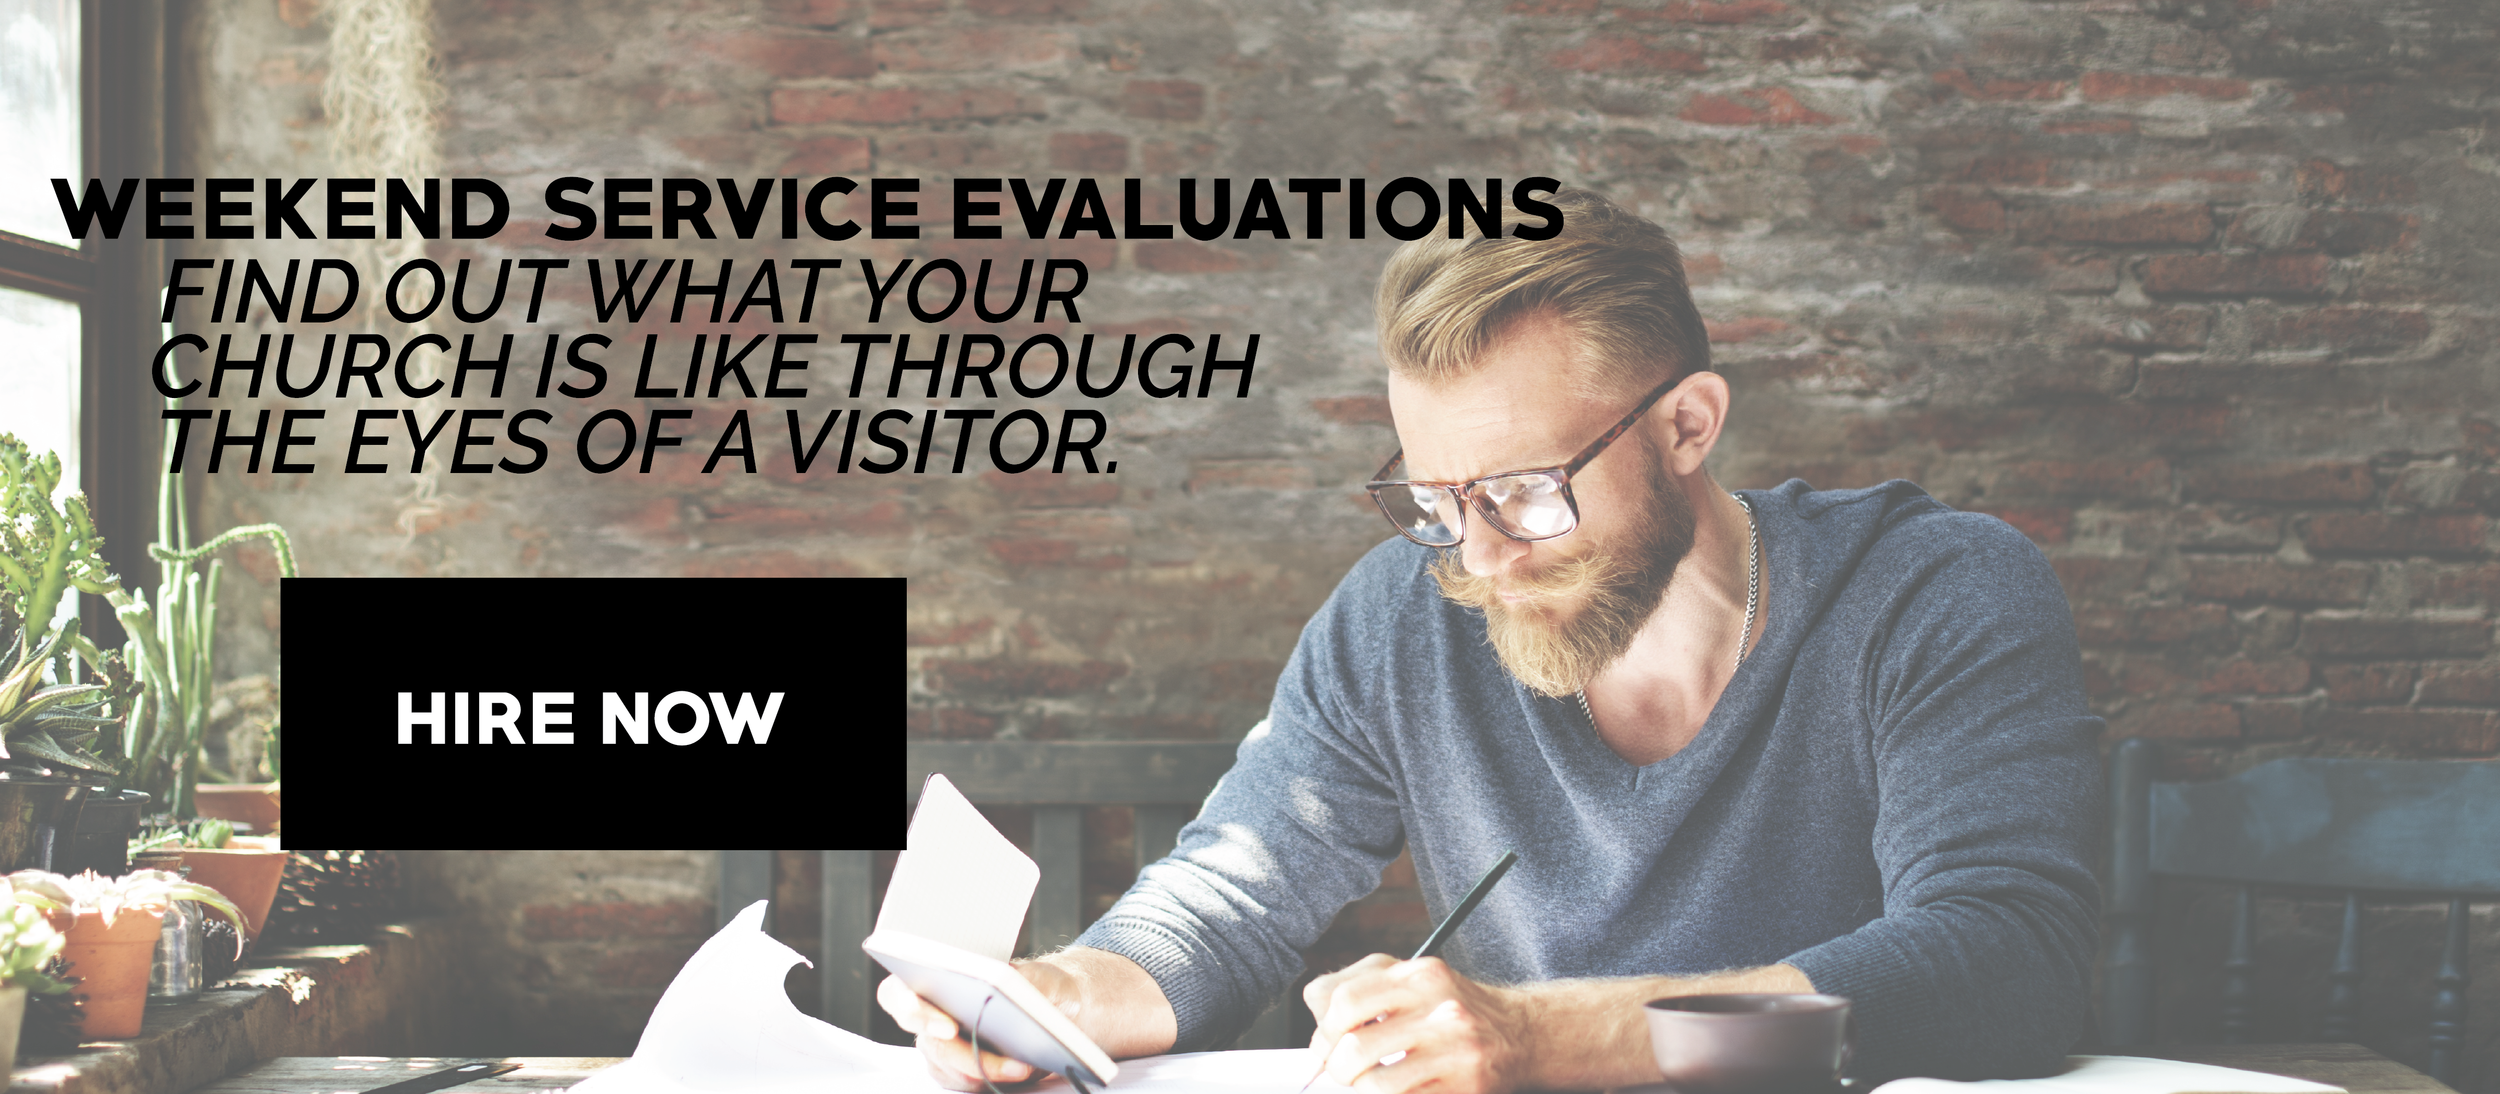 WEEKEND SERVICE EVALUATIONS HEADER.png